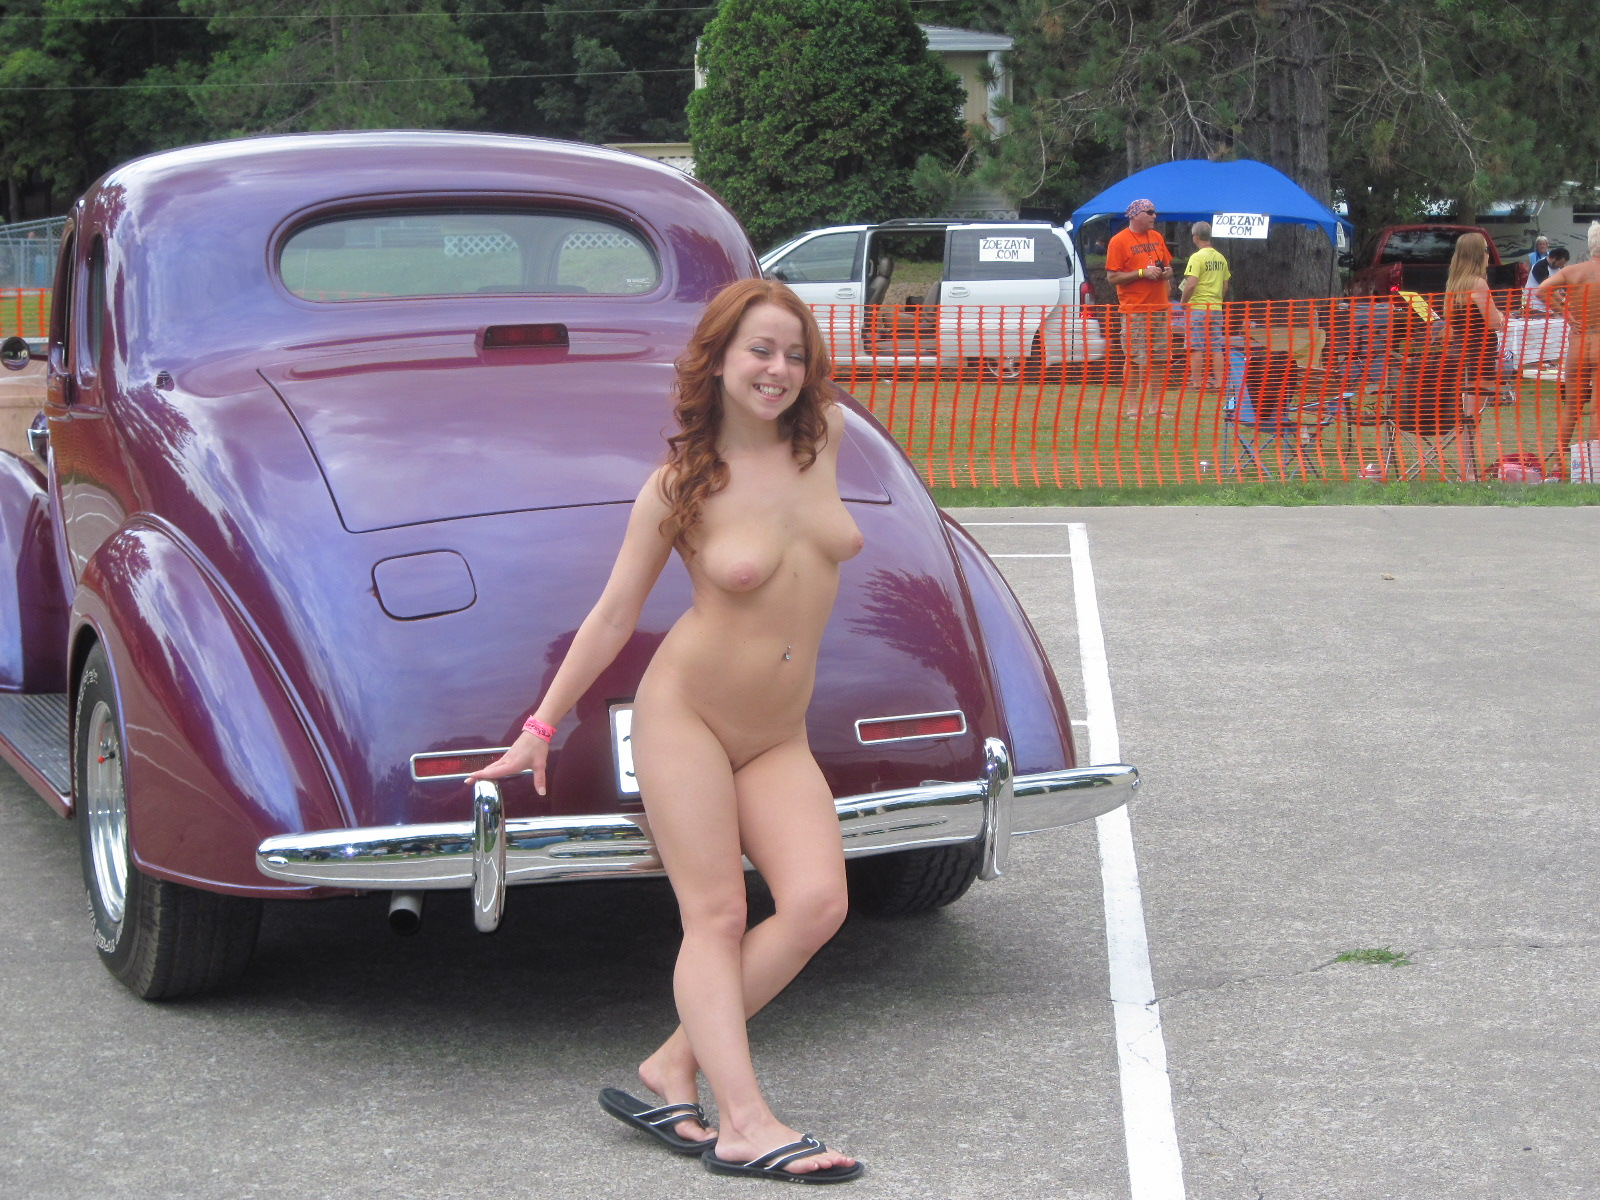 Nude Women With Cars 56